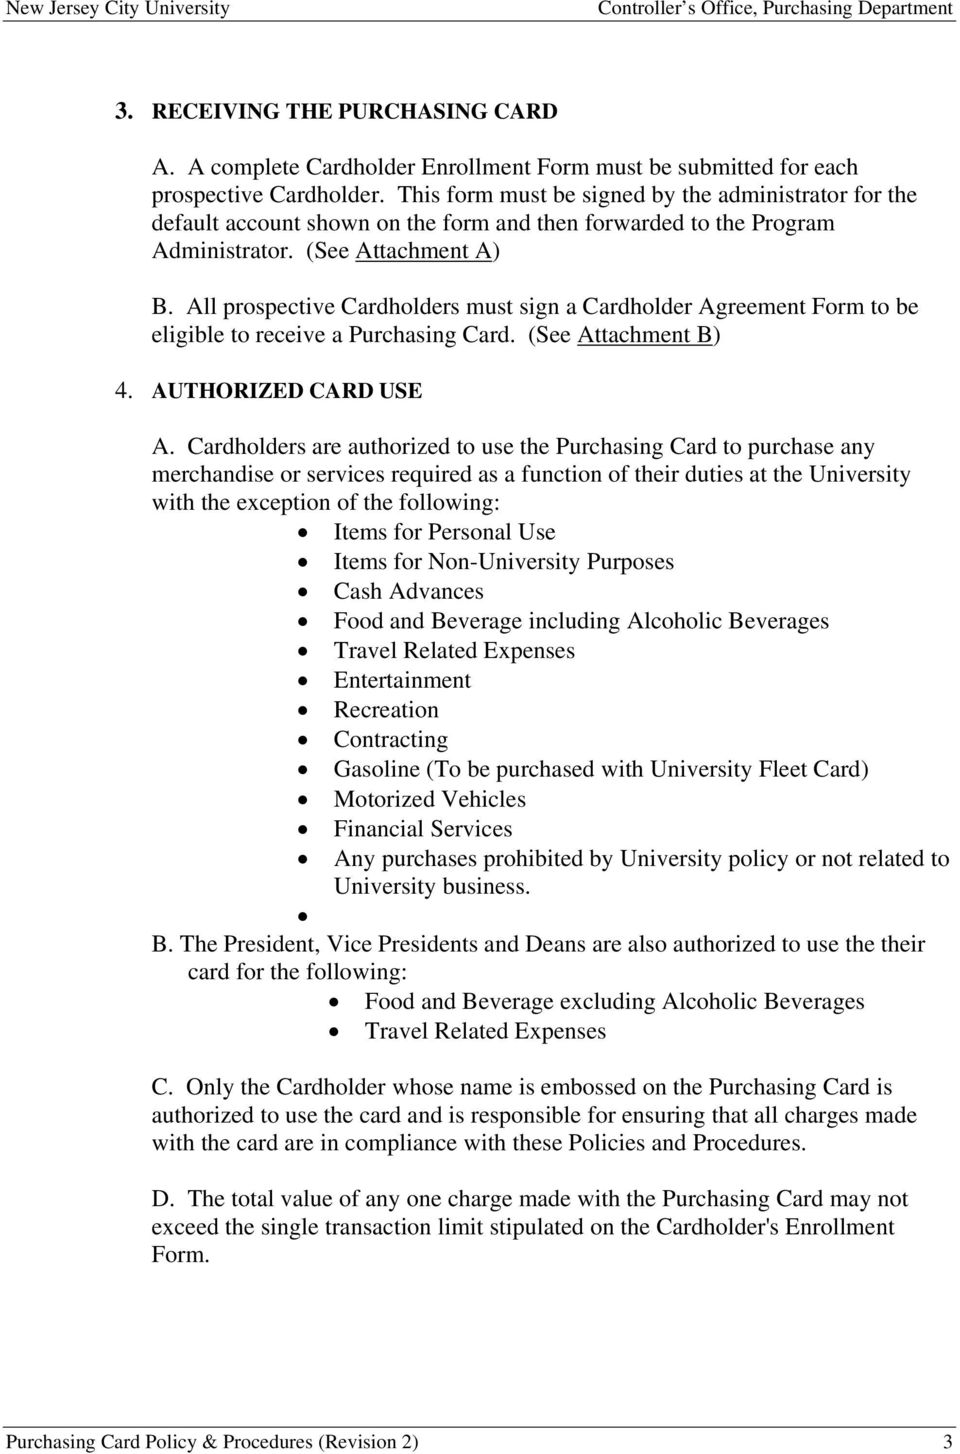 All prospective Cardholders must sign a Cardholder Agreement Form to be eligible to receive a Purchasing Card. (See Attachment B) 4. AUTHORIZED CARD USE A.